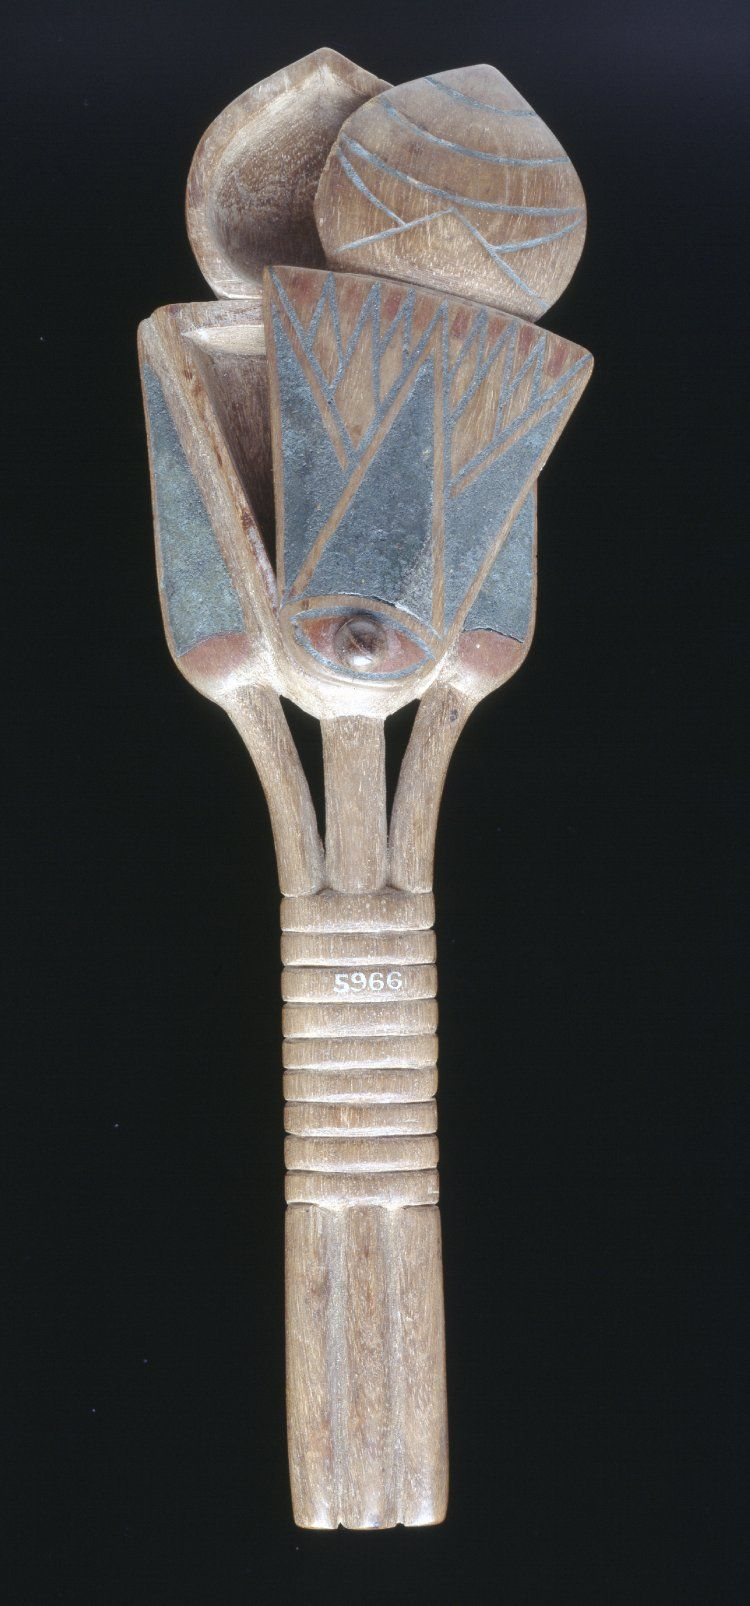 Painted wooden ointment spoon dyn 18 this spoon shaped container egypt painted wooden ointment spoon dyn this spoon shaped container for unguent or scented oil takes the form of lotus flowers surmounted by a mandrake izmirmasajfo